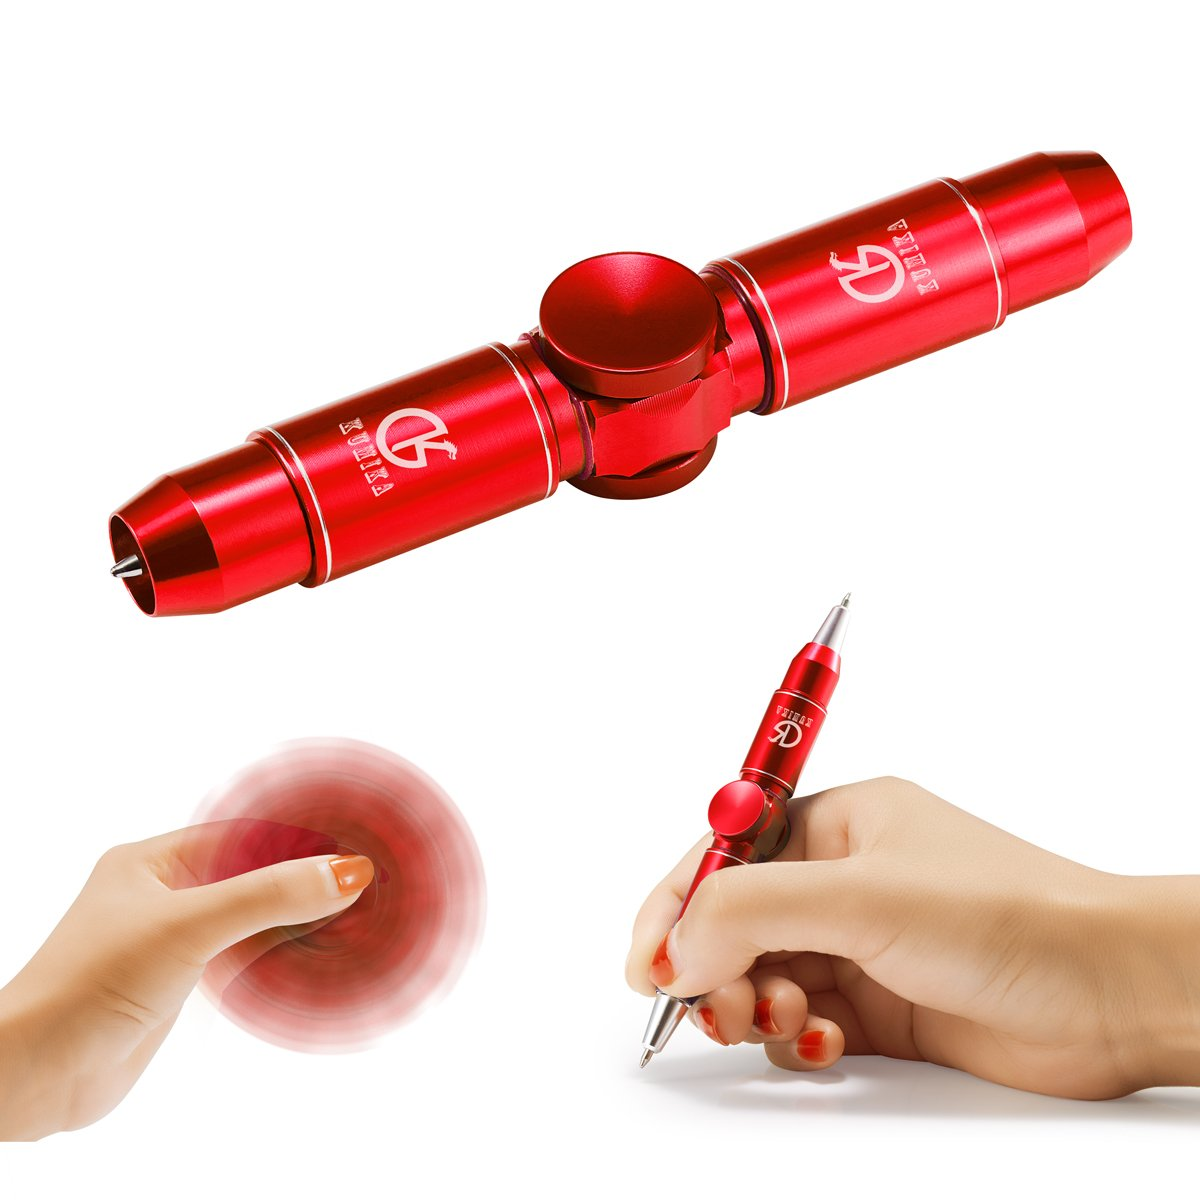 Kumika Hand Fidget Pen, Thinking Pen 2nd Generation, Fidget Spinning Metal Hand Toy, Stress Relief, Perfect for ADD, ADHD, Anxiety, with Gift Box for Kids Adults Time Killer (Red)